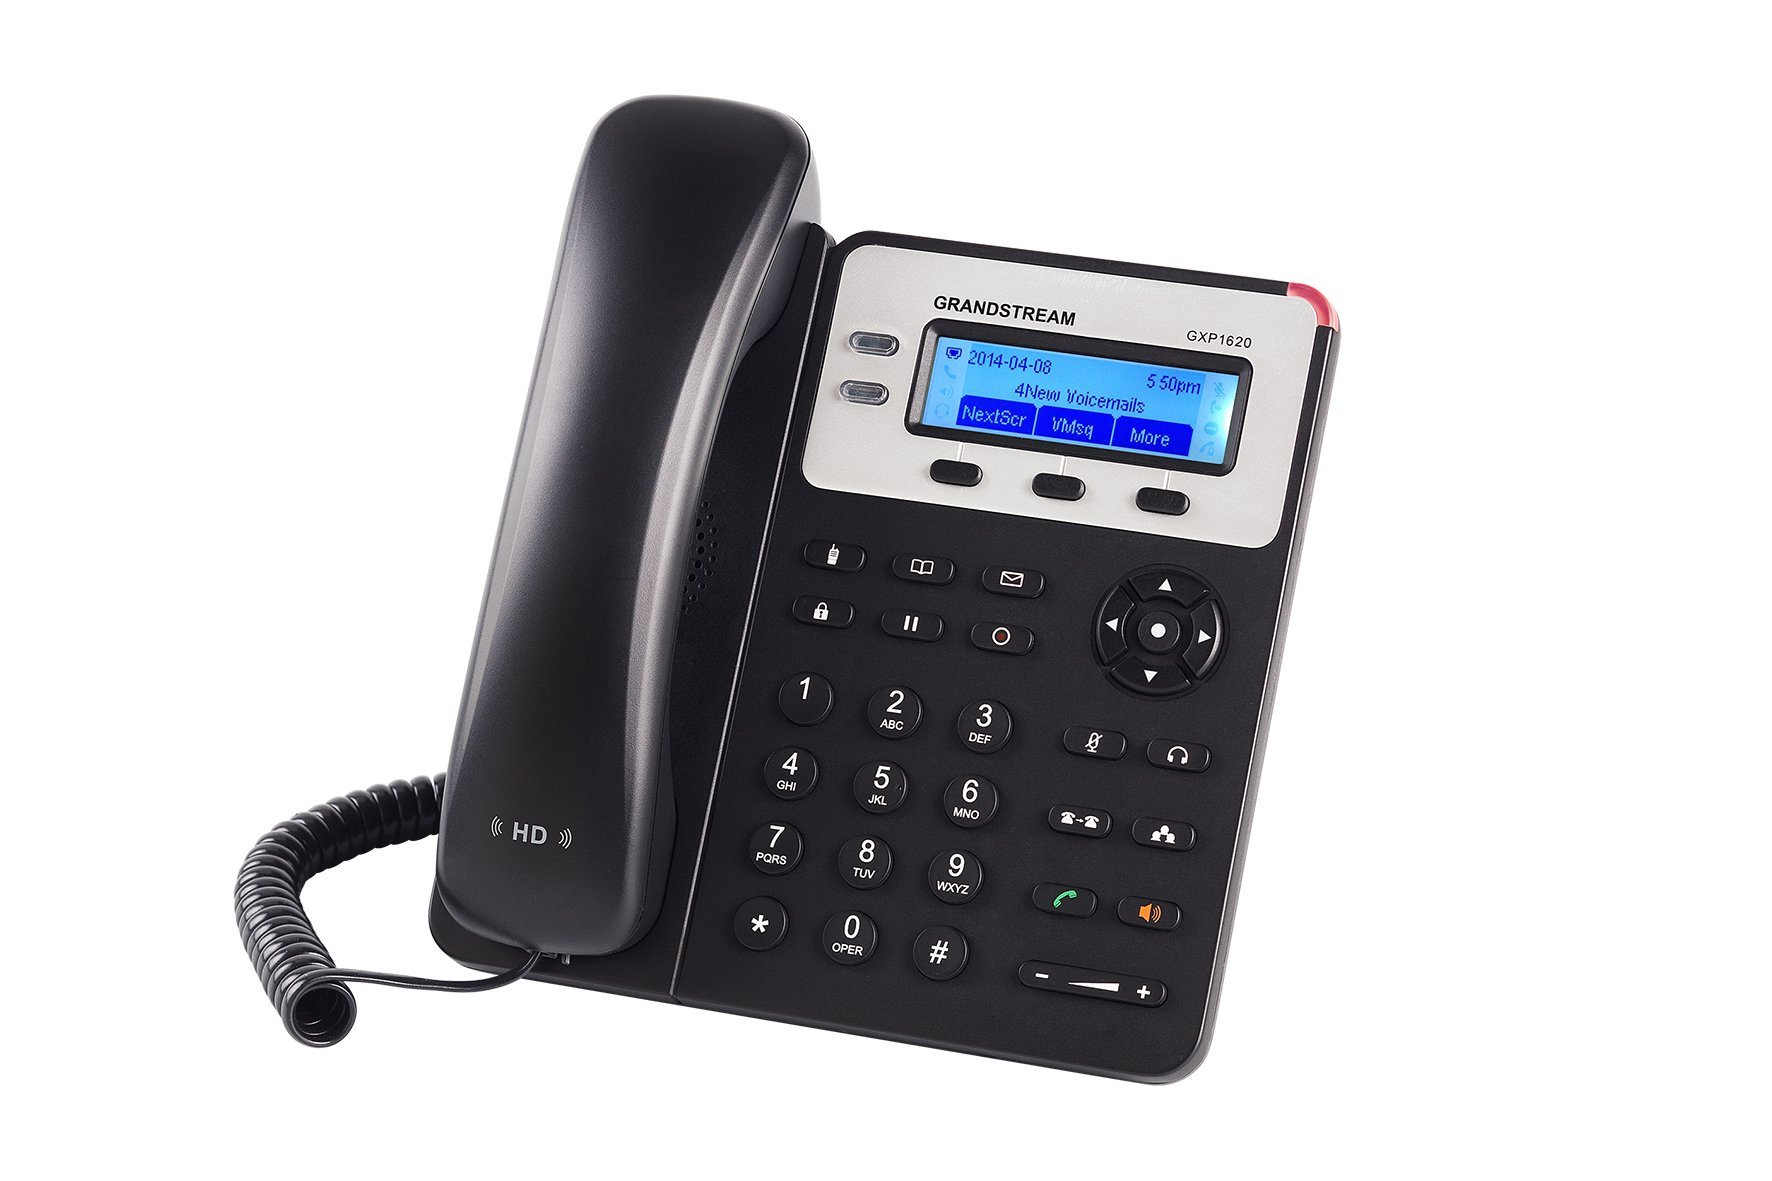 Grandstream GXP1625 Small to Medium Business HD IP Phone with POE VoIP Phone and Device by Grandstream